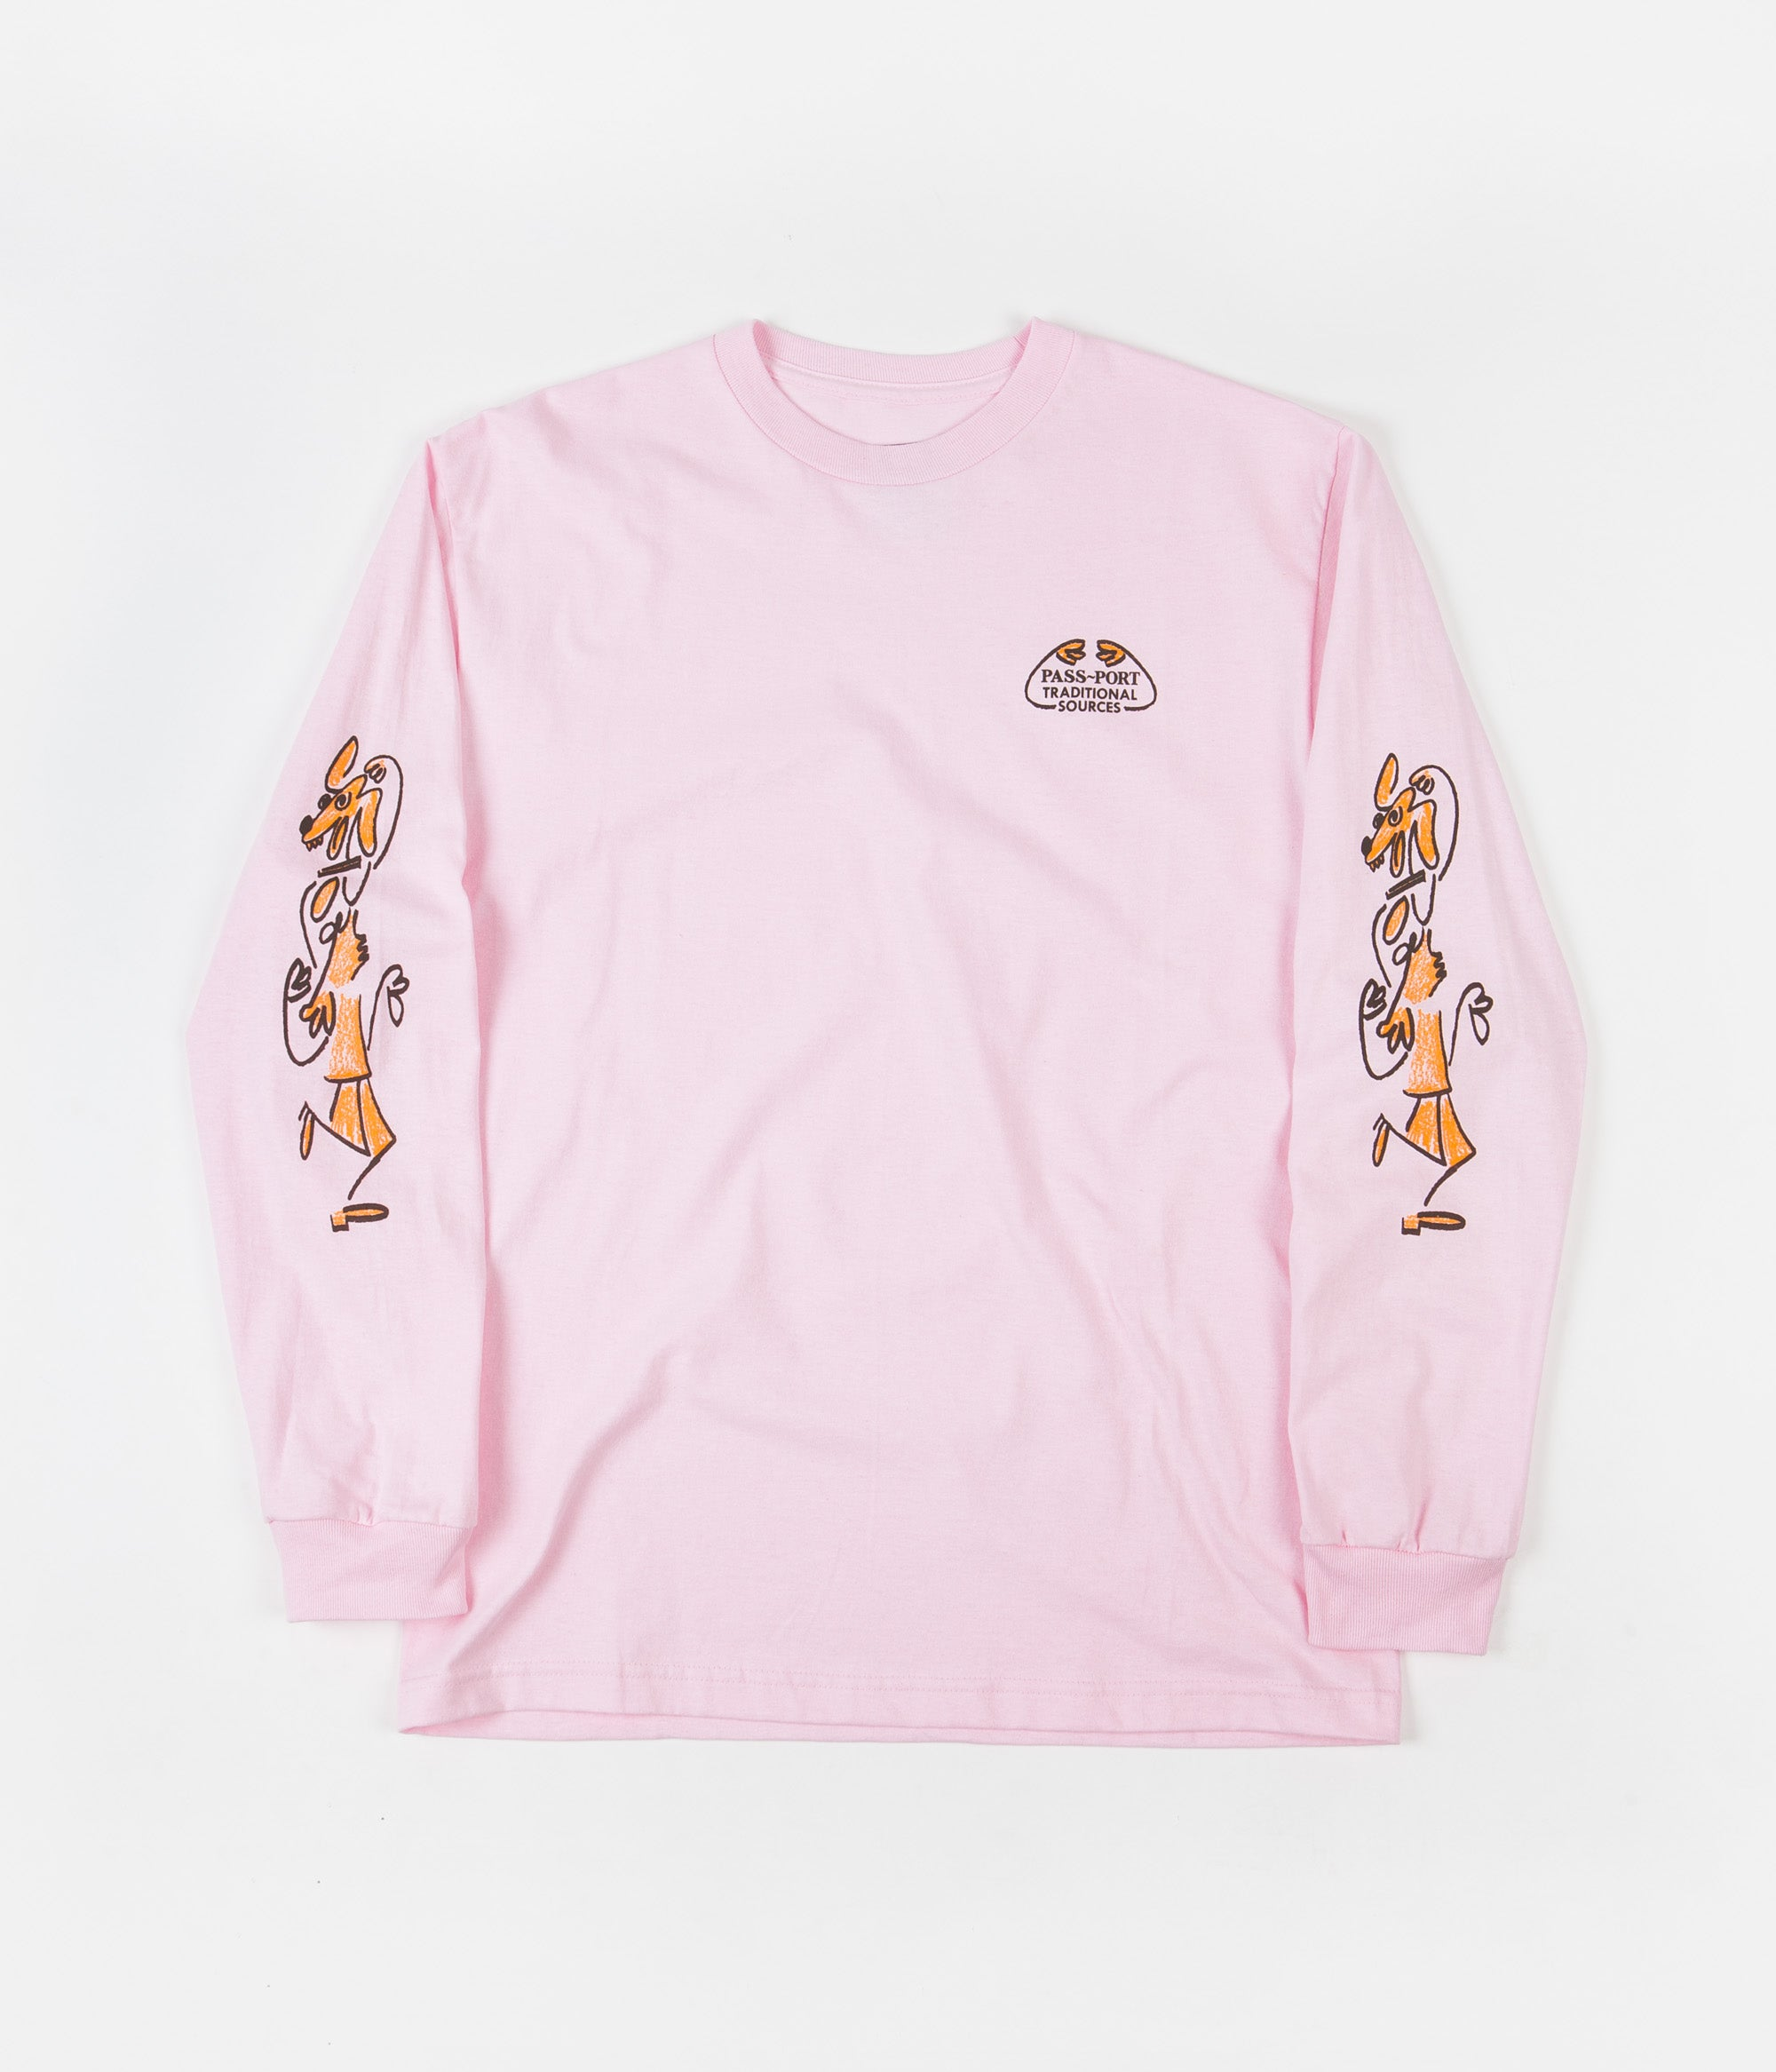 Pass Port Dancing Steps Long Sleeve T-Shirt - Pink